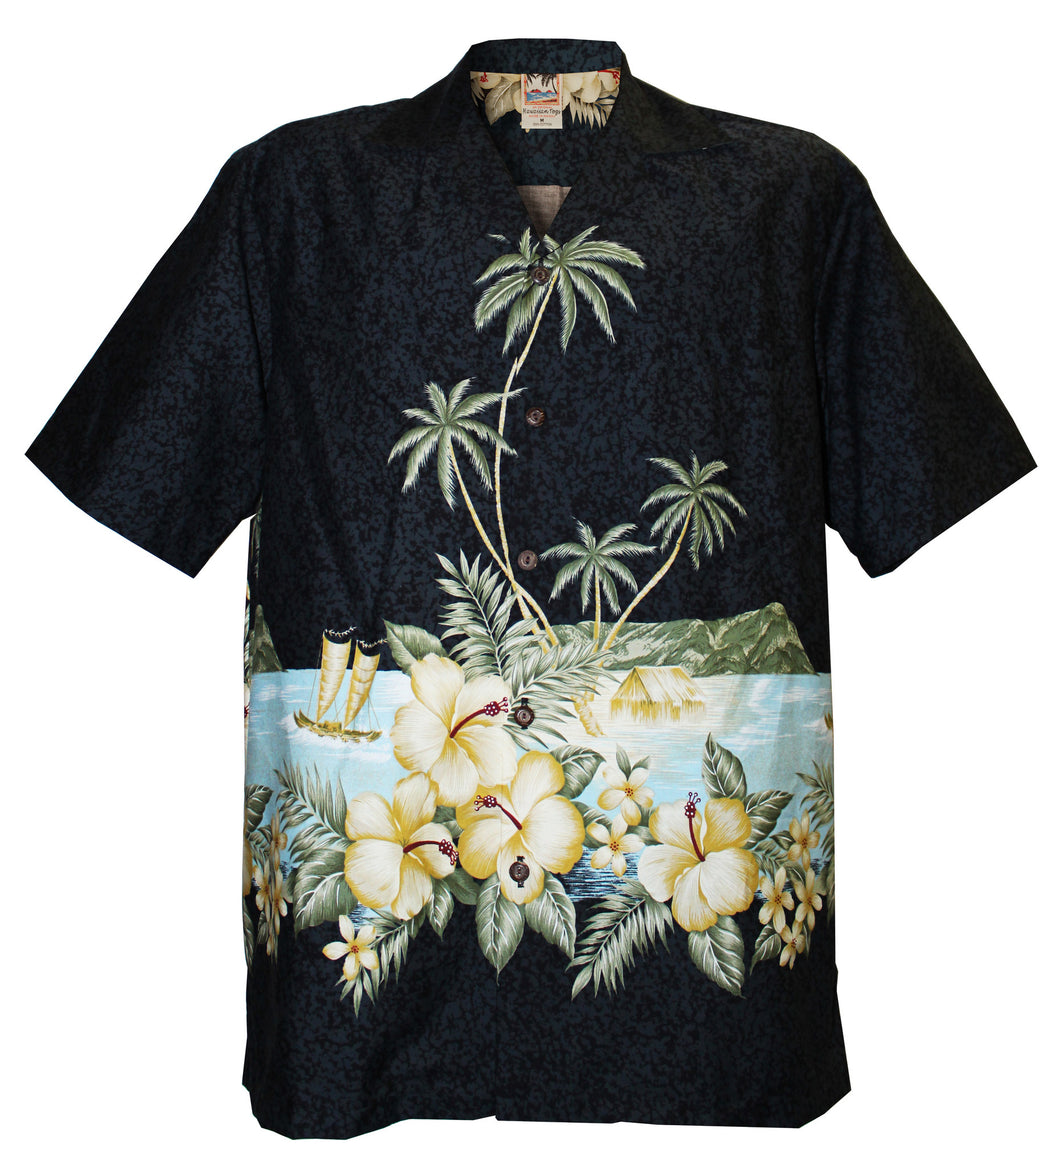 Black Diamond Head Hawaiian Aloha Shirt